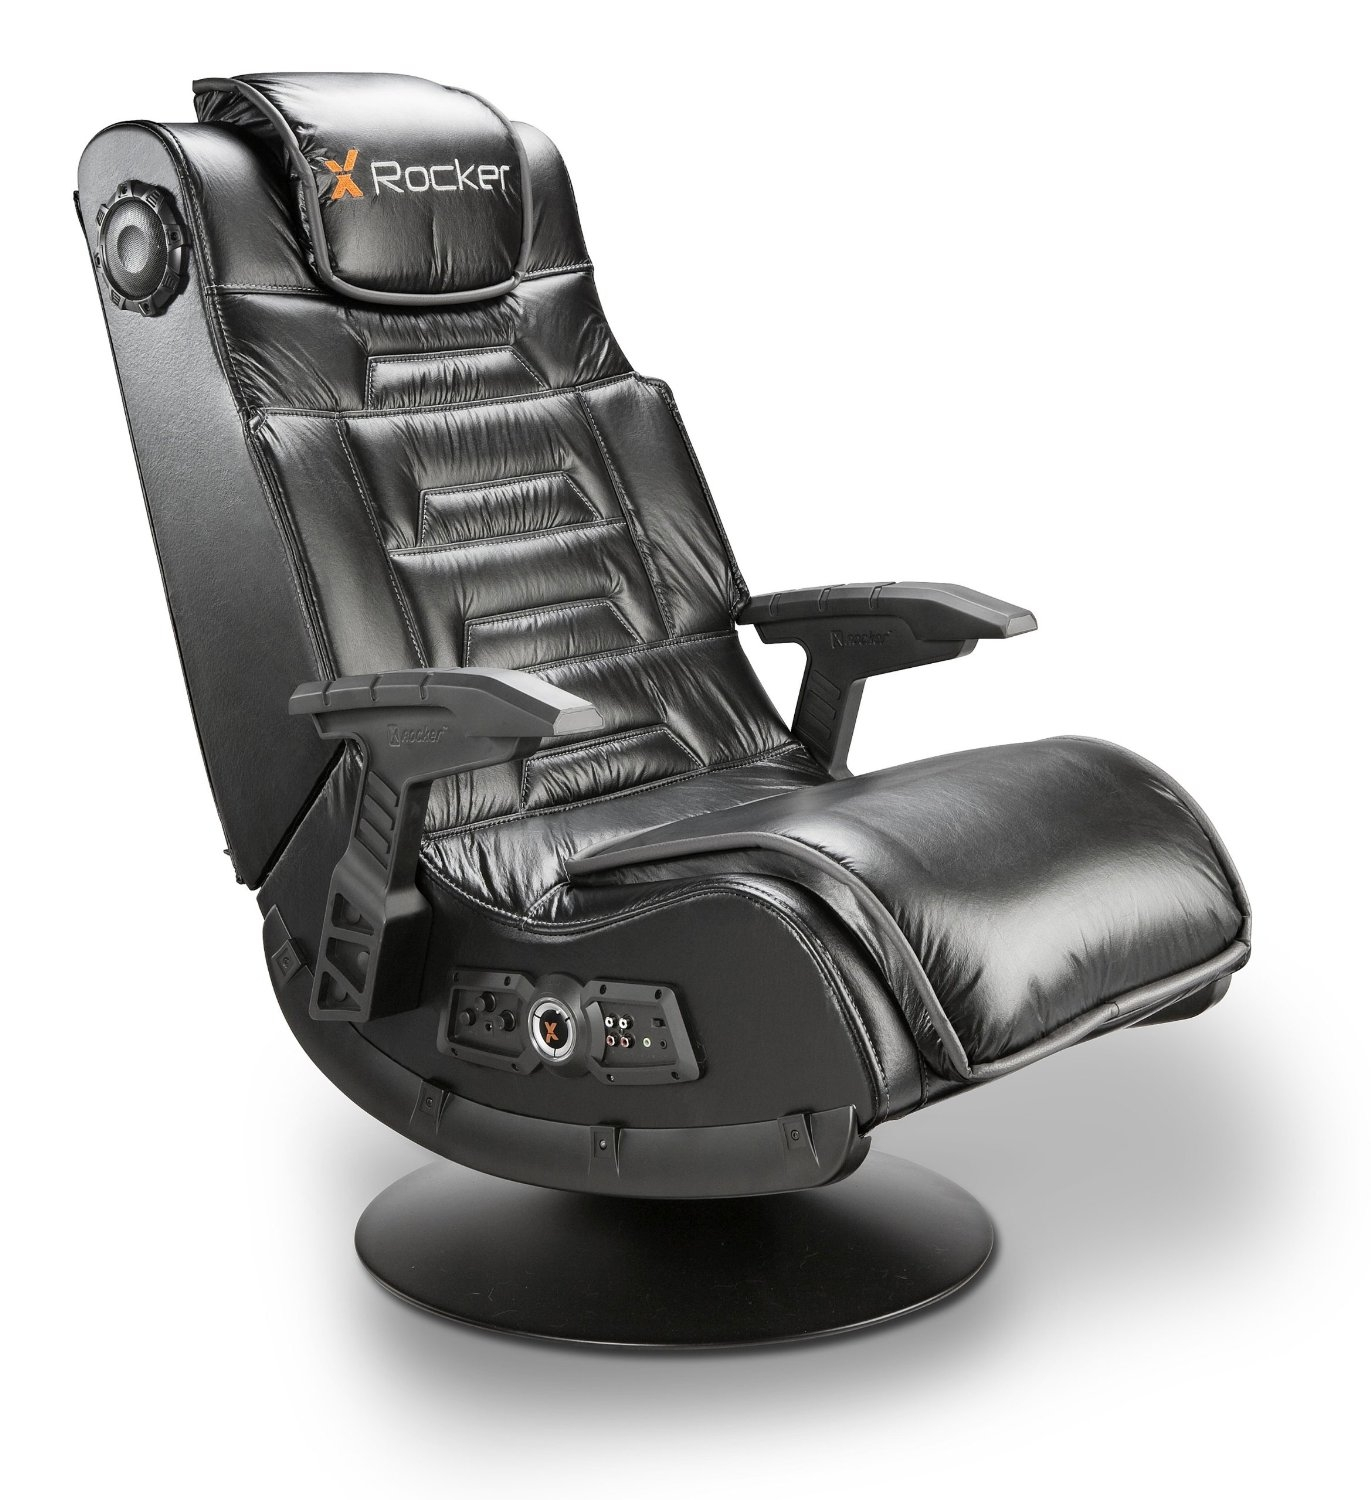 Furniture Walmart Gaming Chair Gamer Chair For Xbox Gaming With Gaming Sofa Chairs (Image 9 of 15)